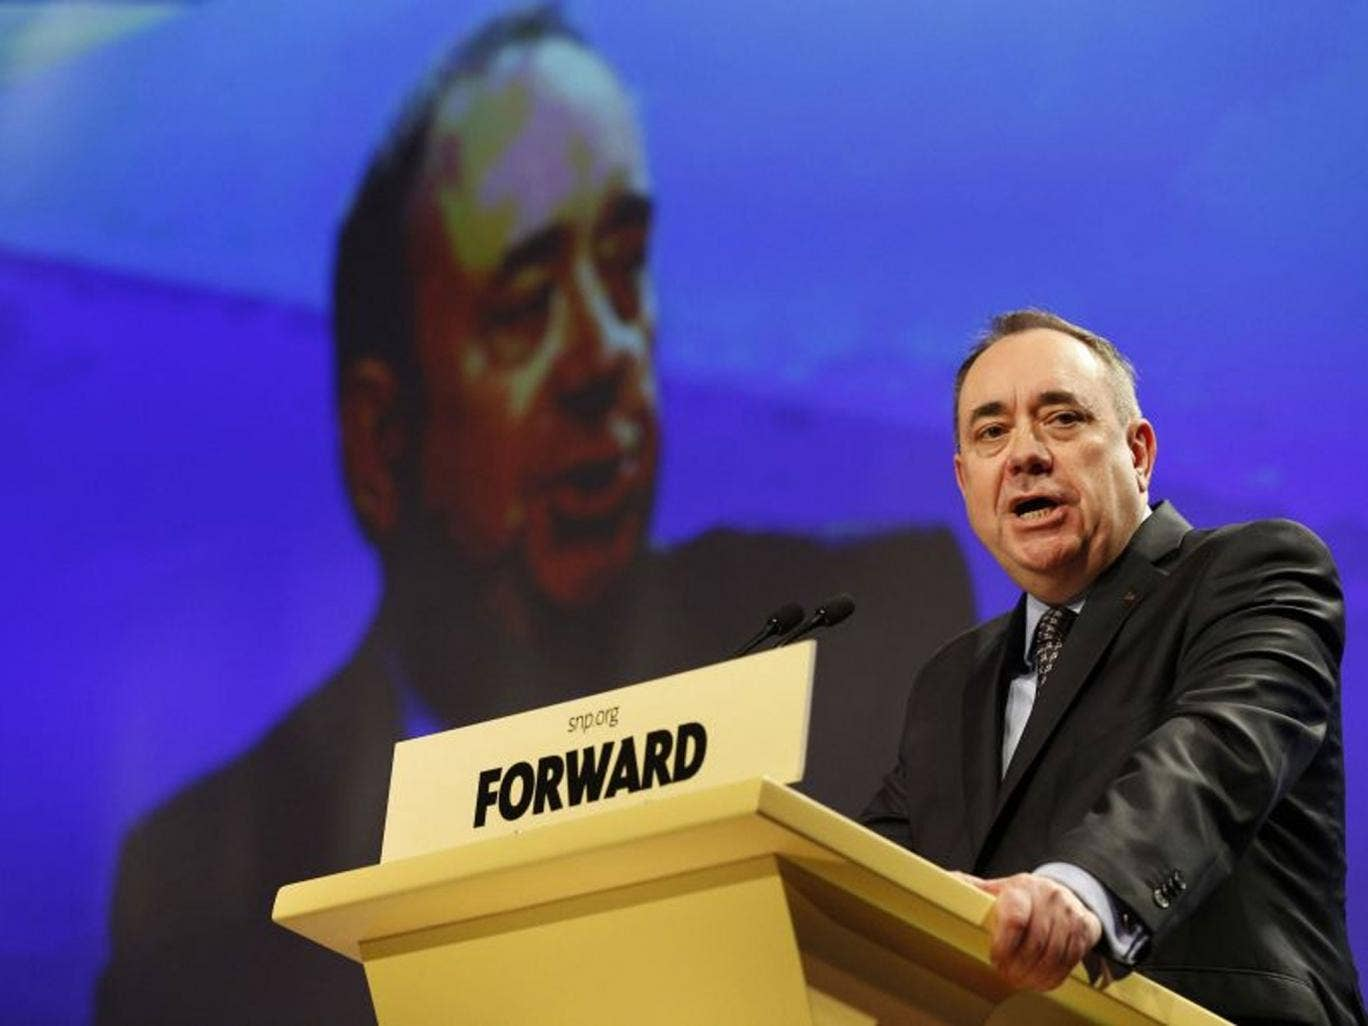 Scotland's First Minister Alex Salmond delivers his speech at the Scottish National Party (SNP) Spring Conference in Aberdeen, Scotland April 12, 2014.